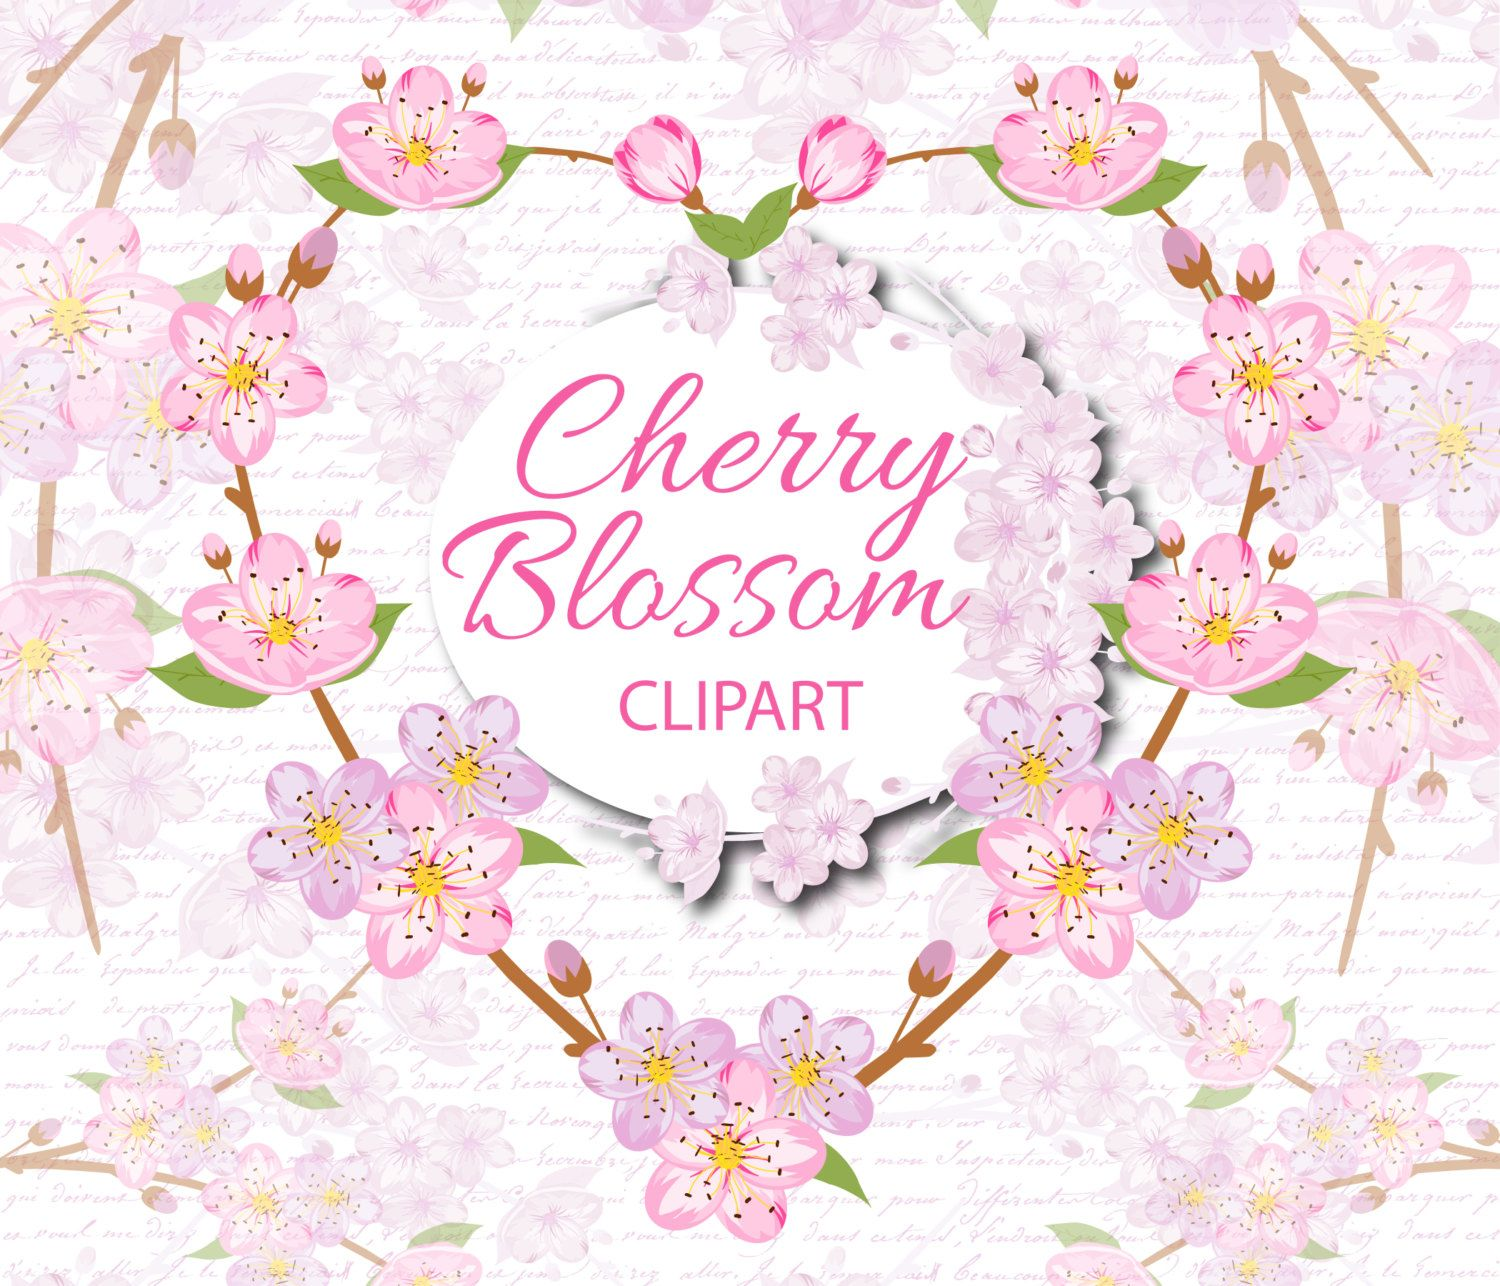 Blossom clipart cute. Cherry sakura romantic planner